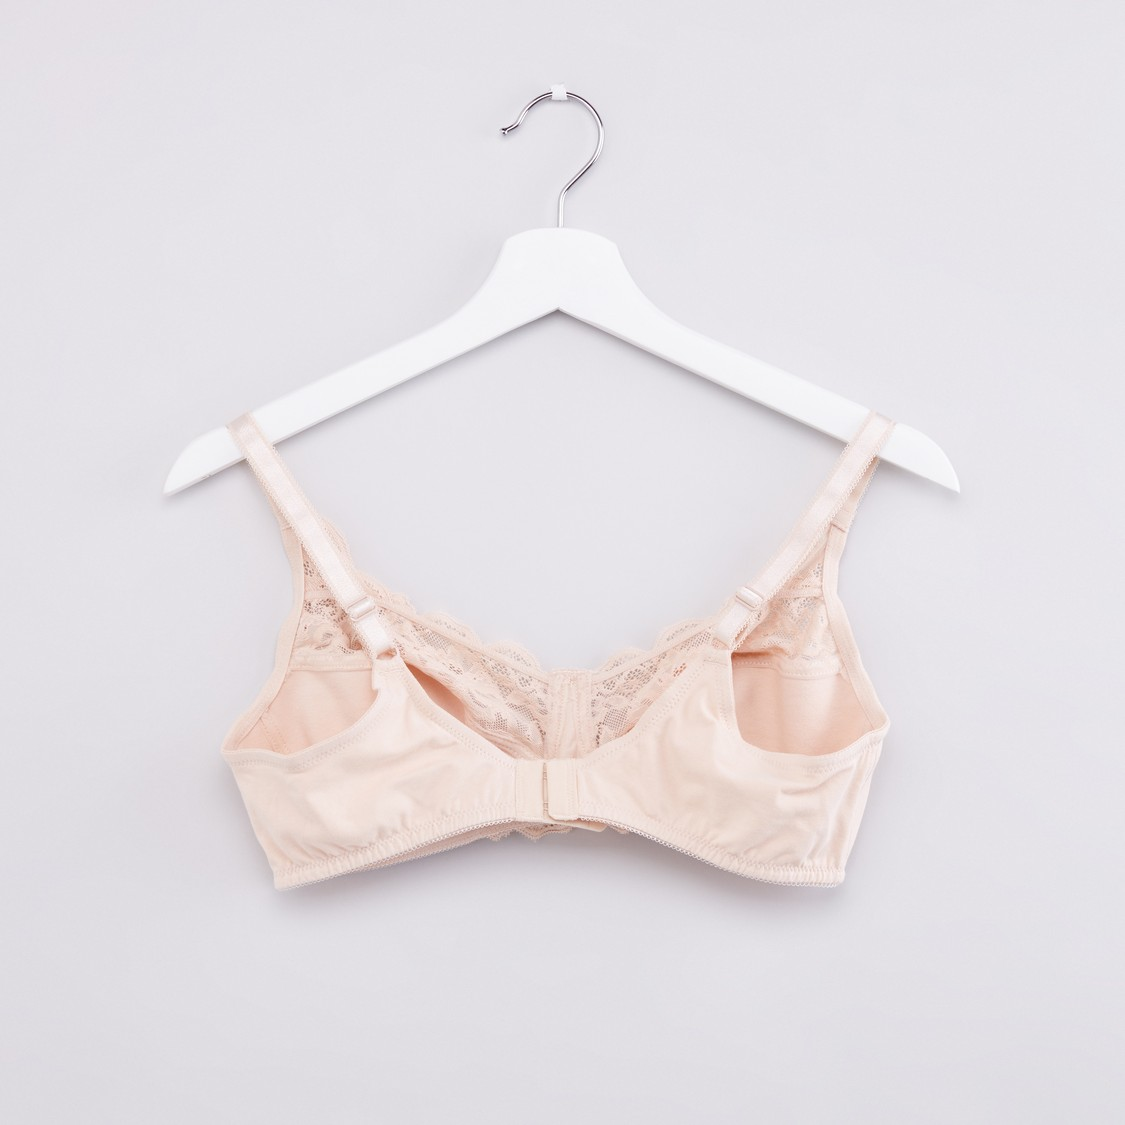 Lace Detailed Bra with Adjustable Straps and Hook and Eye Closure